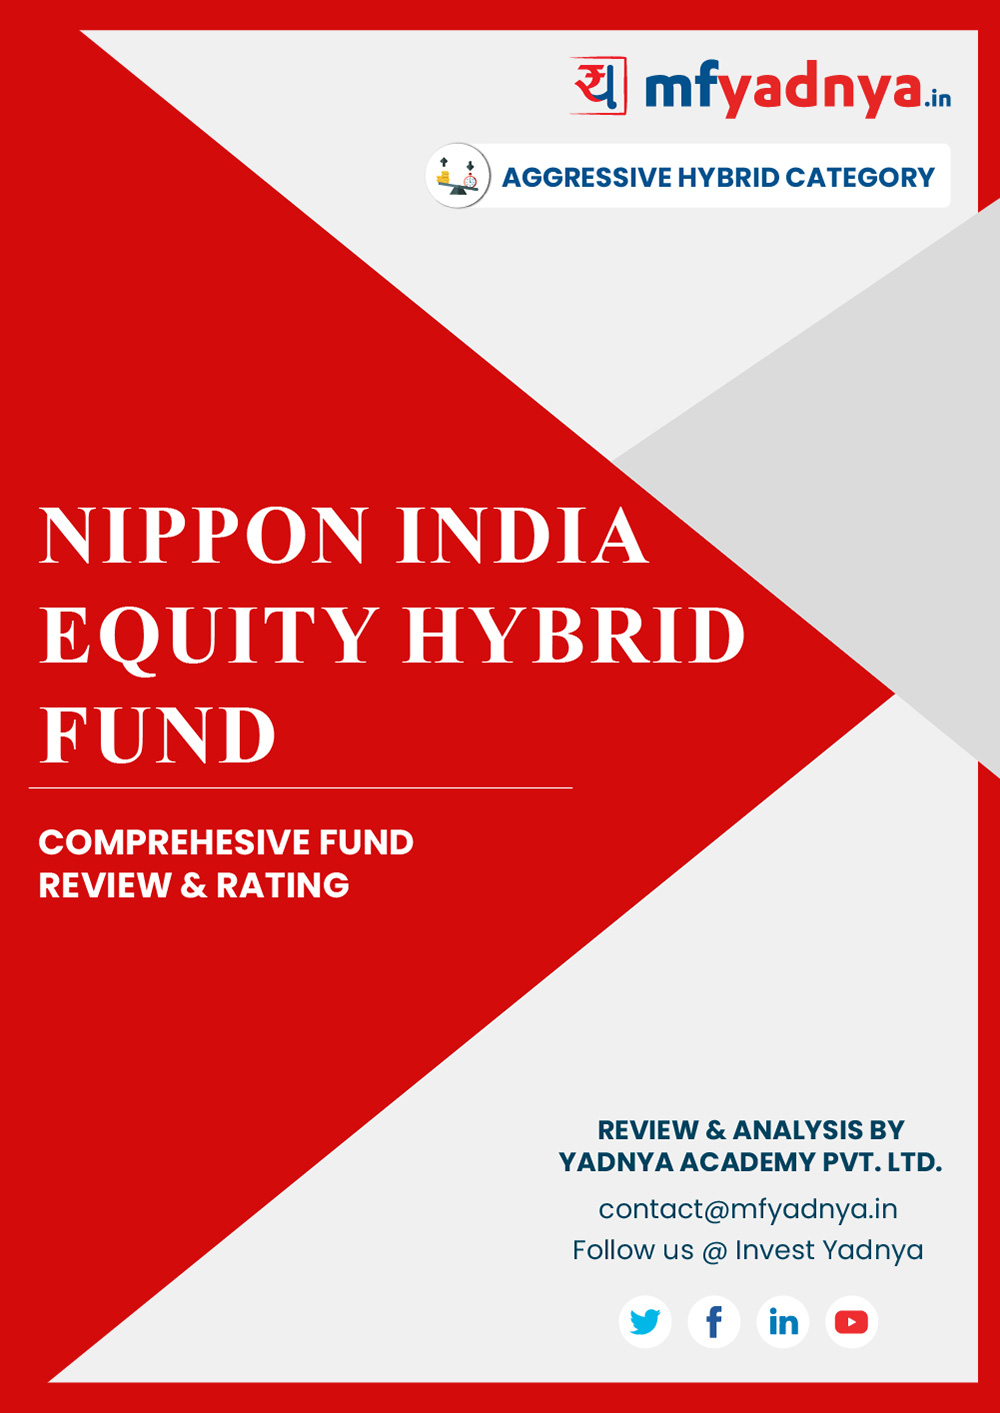 Aggressive Hybrid Category Review - 'NIPPON India Equity Hybrid Fund'. Most Comprehensive and detailed MF review based on Yadnya's proprietary methodology of Green, Yellow & Red Star. Detailed Analysis & Review based on Feb 29th, 2020 data. Review also gives you the historical trend of the performance which will show fund's performance consistency.